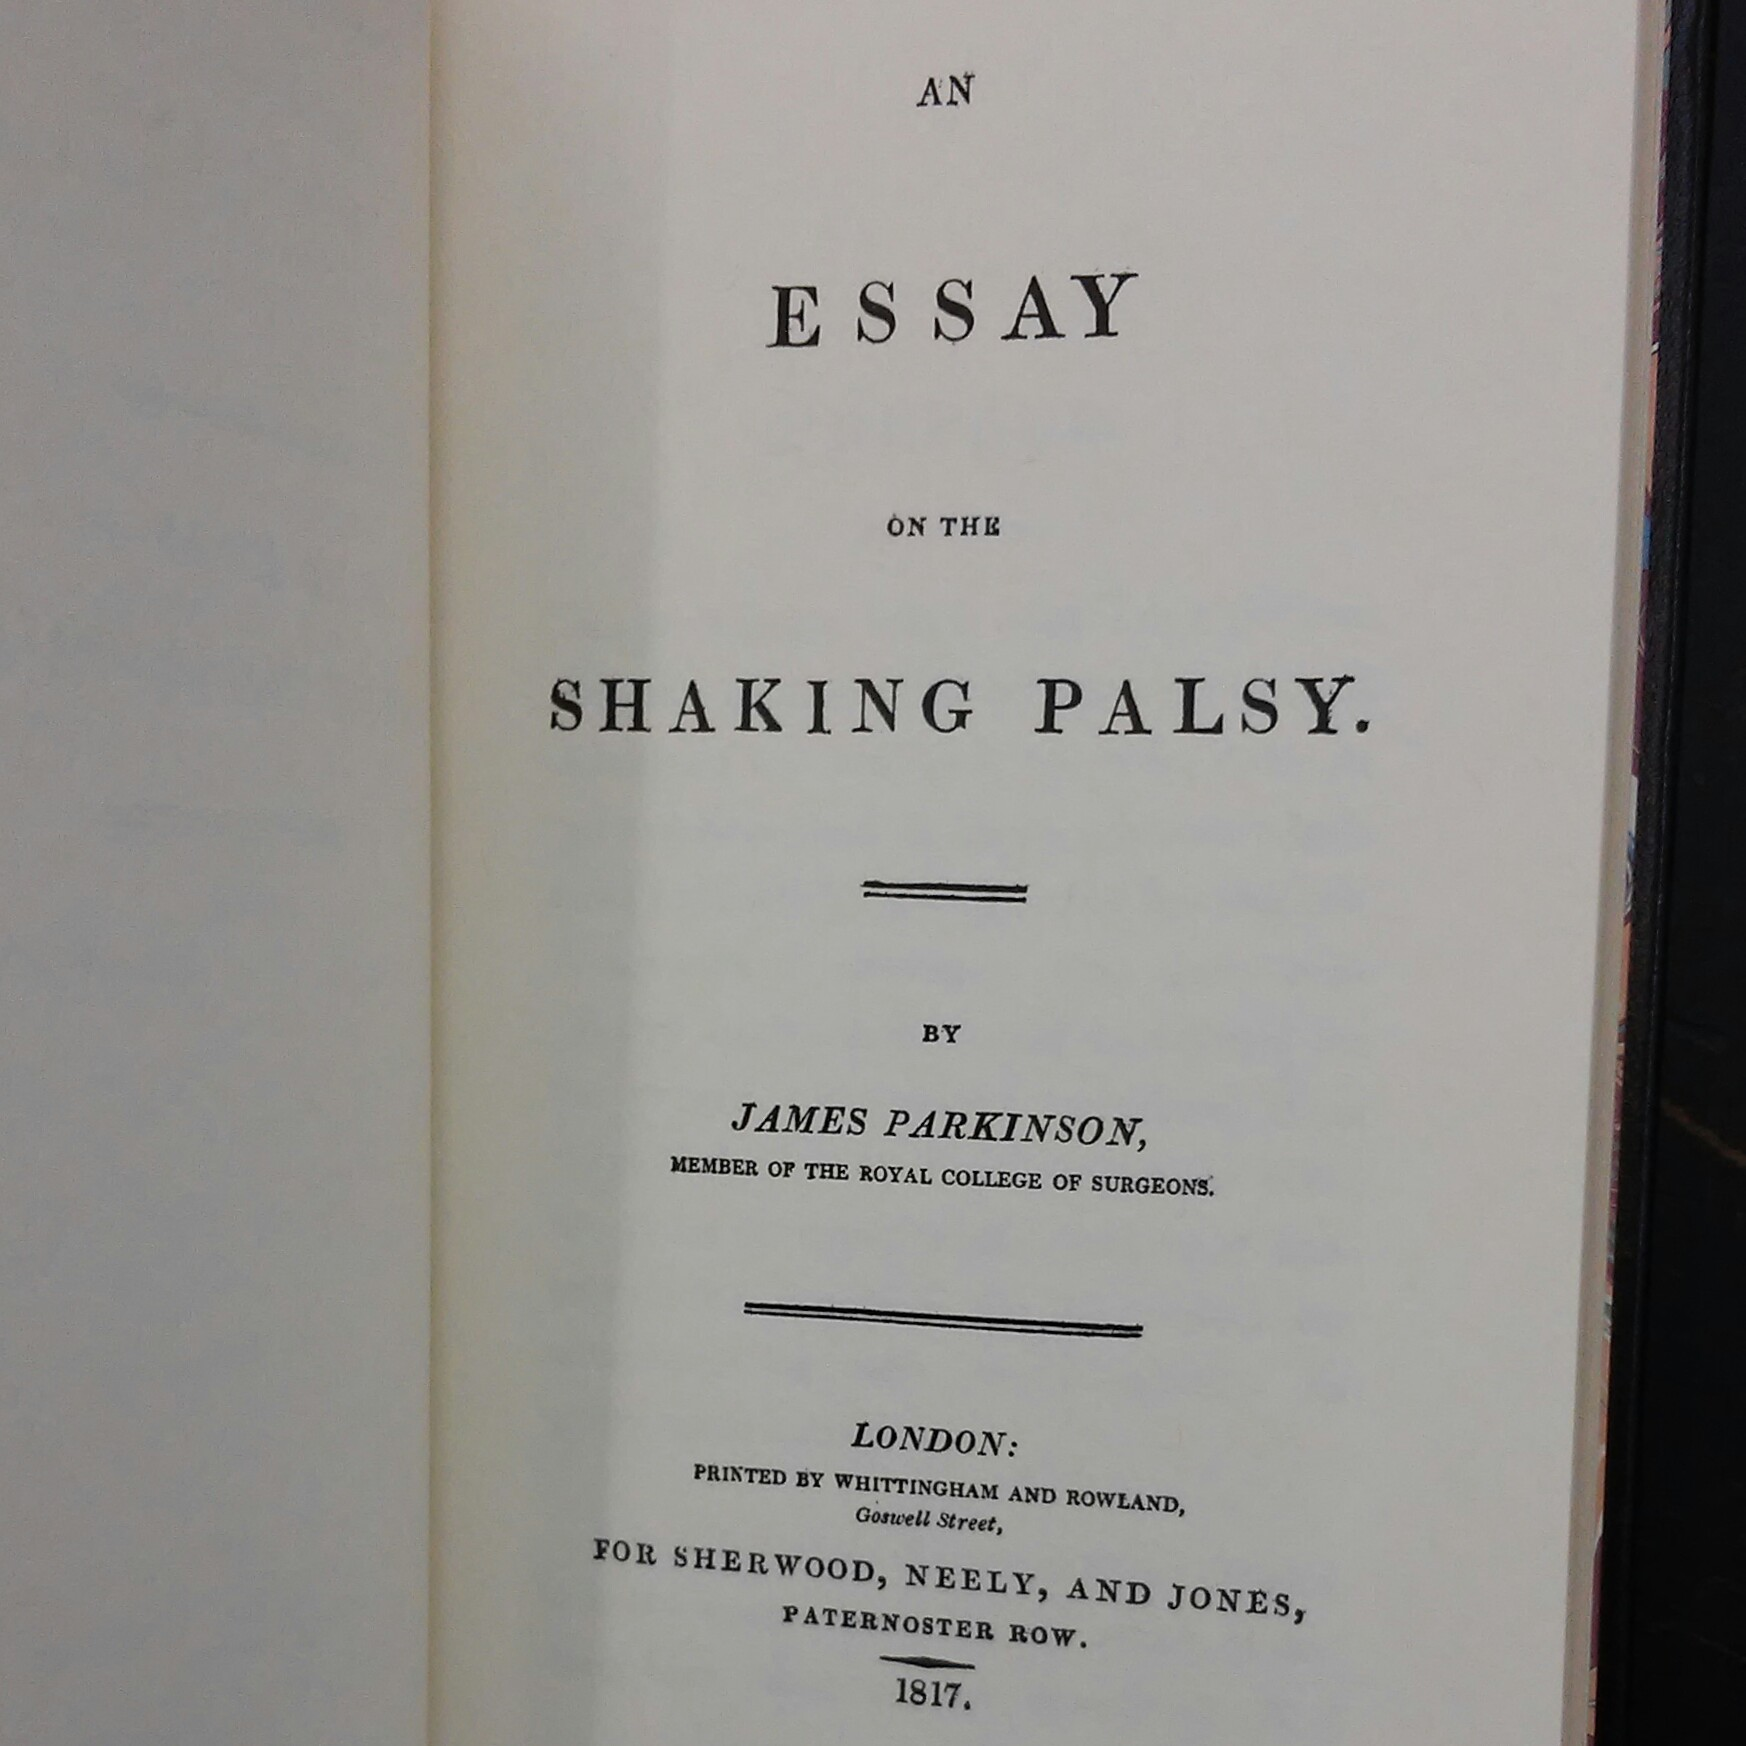 an essay on the shaking palsy An essay on the shaking palsy published in neuropsychiatry classics, journal of neuropsychiatry and clinical neuroscience, 14 (2), 2002 originally published as a monograph in 1817.